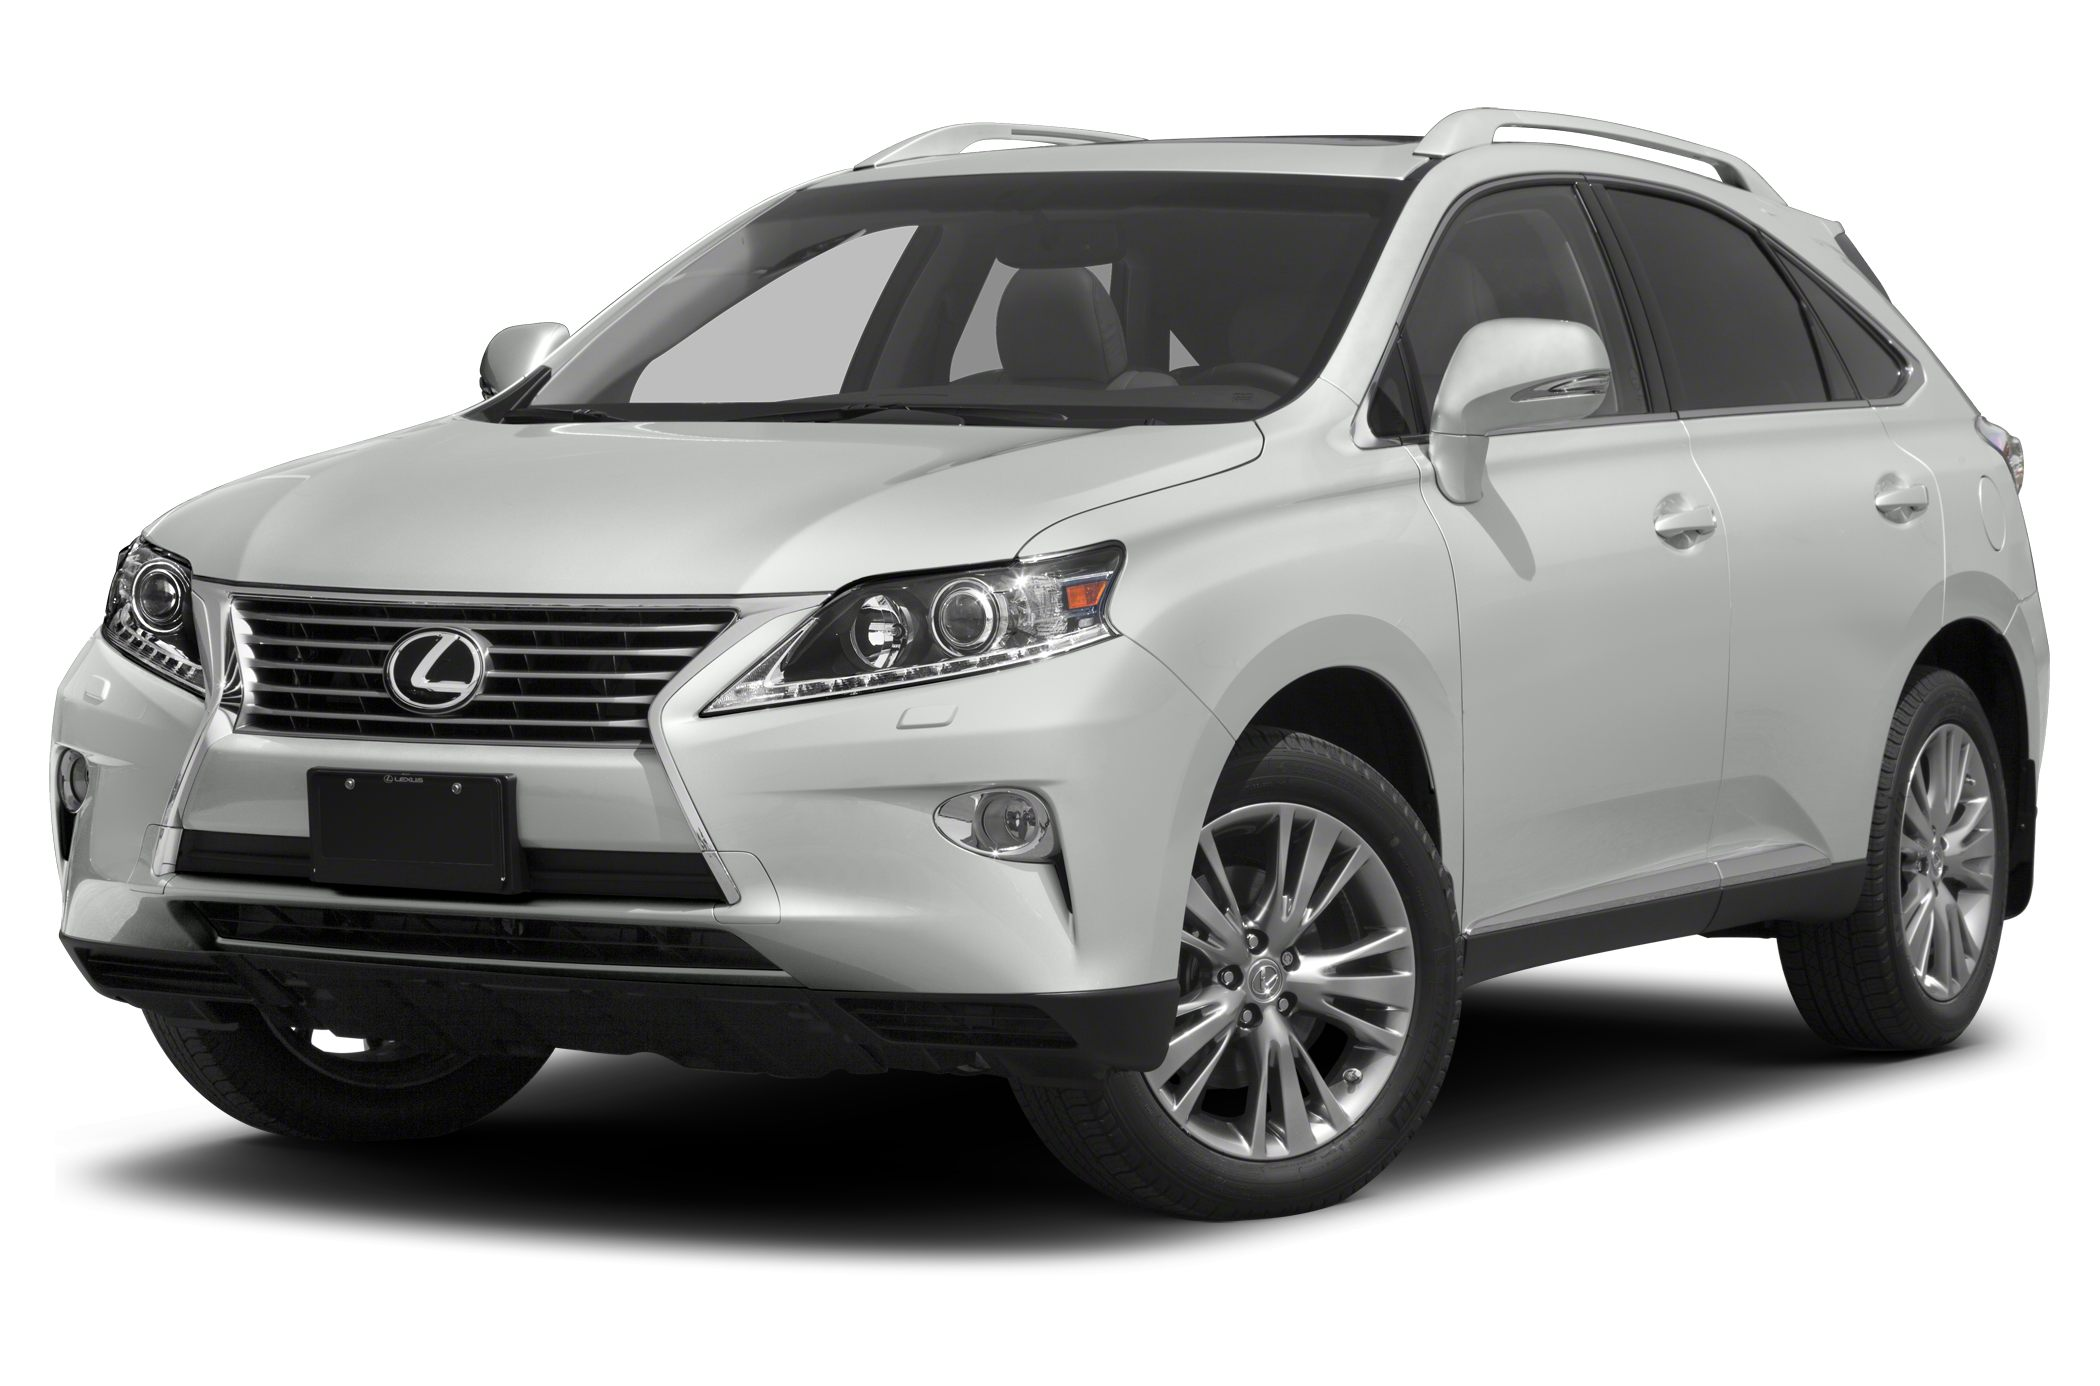 2013 Lexus RX 350 Base SUV for sale in Jacksonville for $34,990 with 18,306 miles.